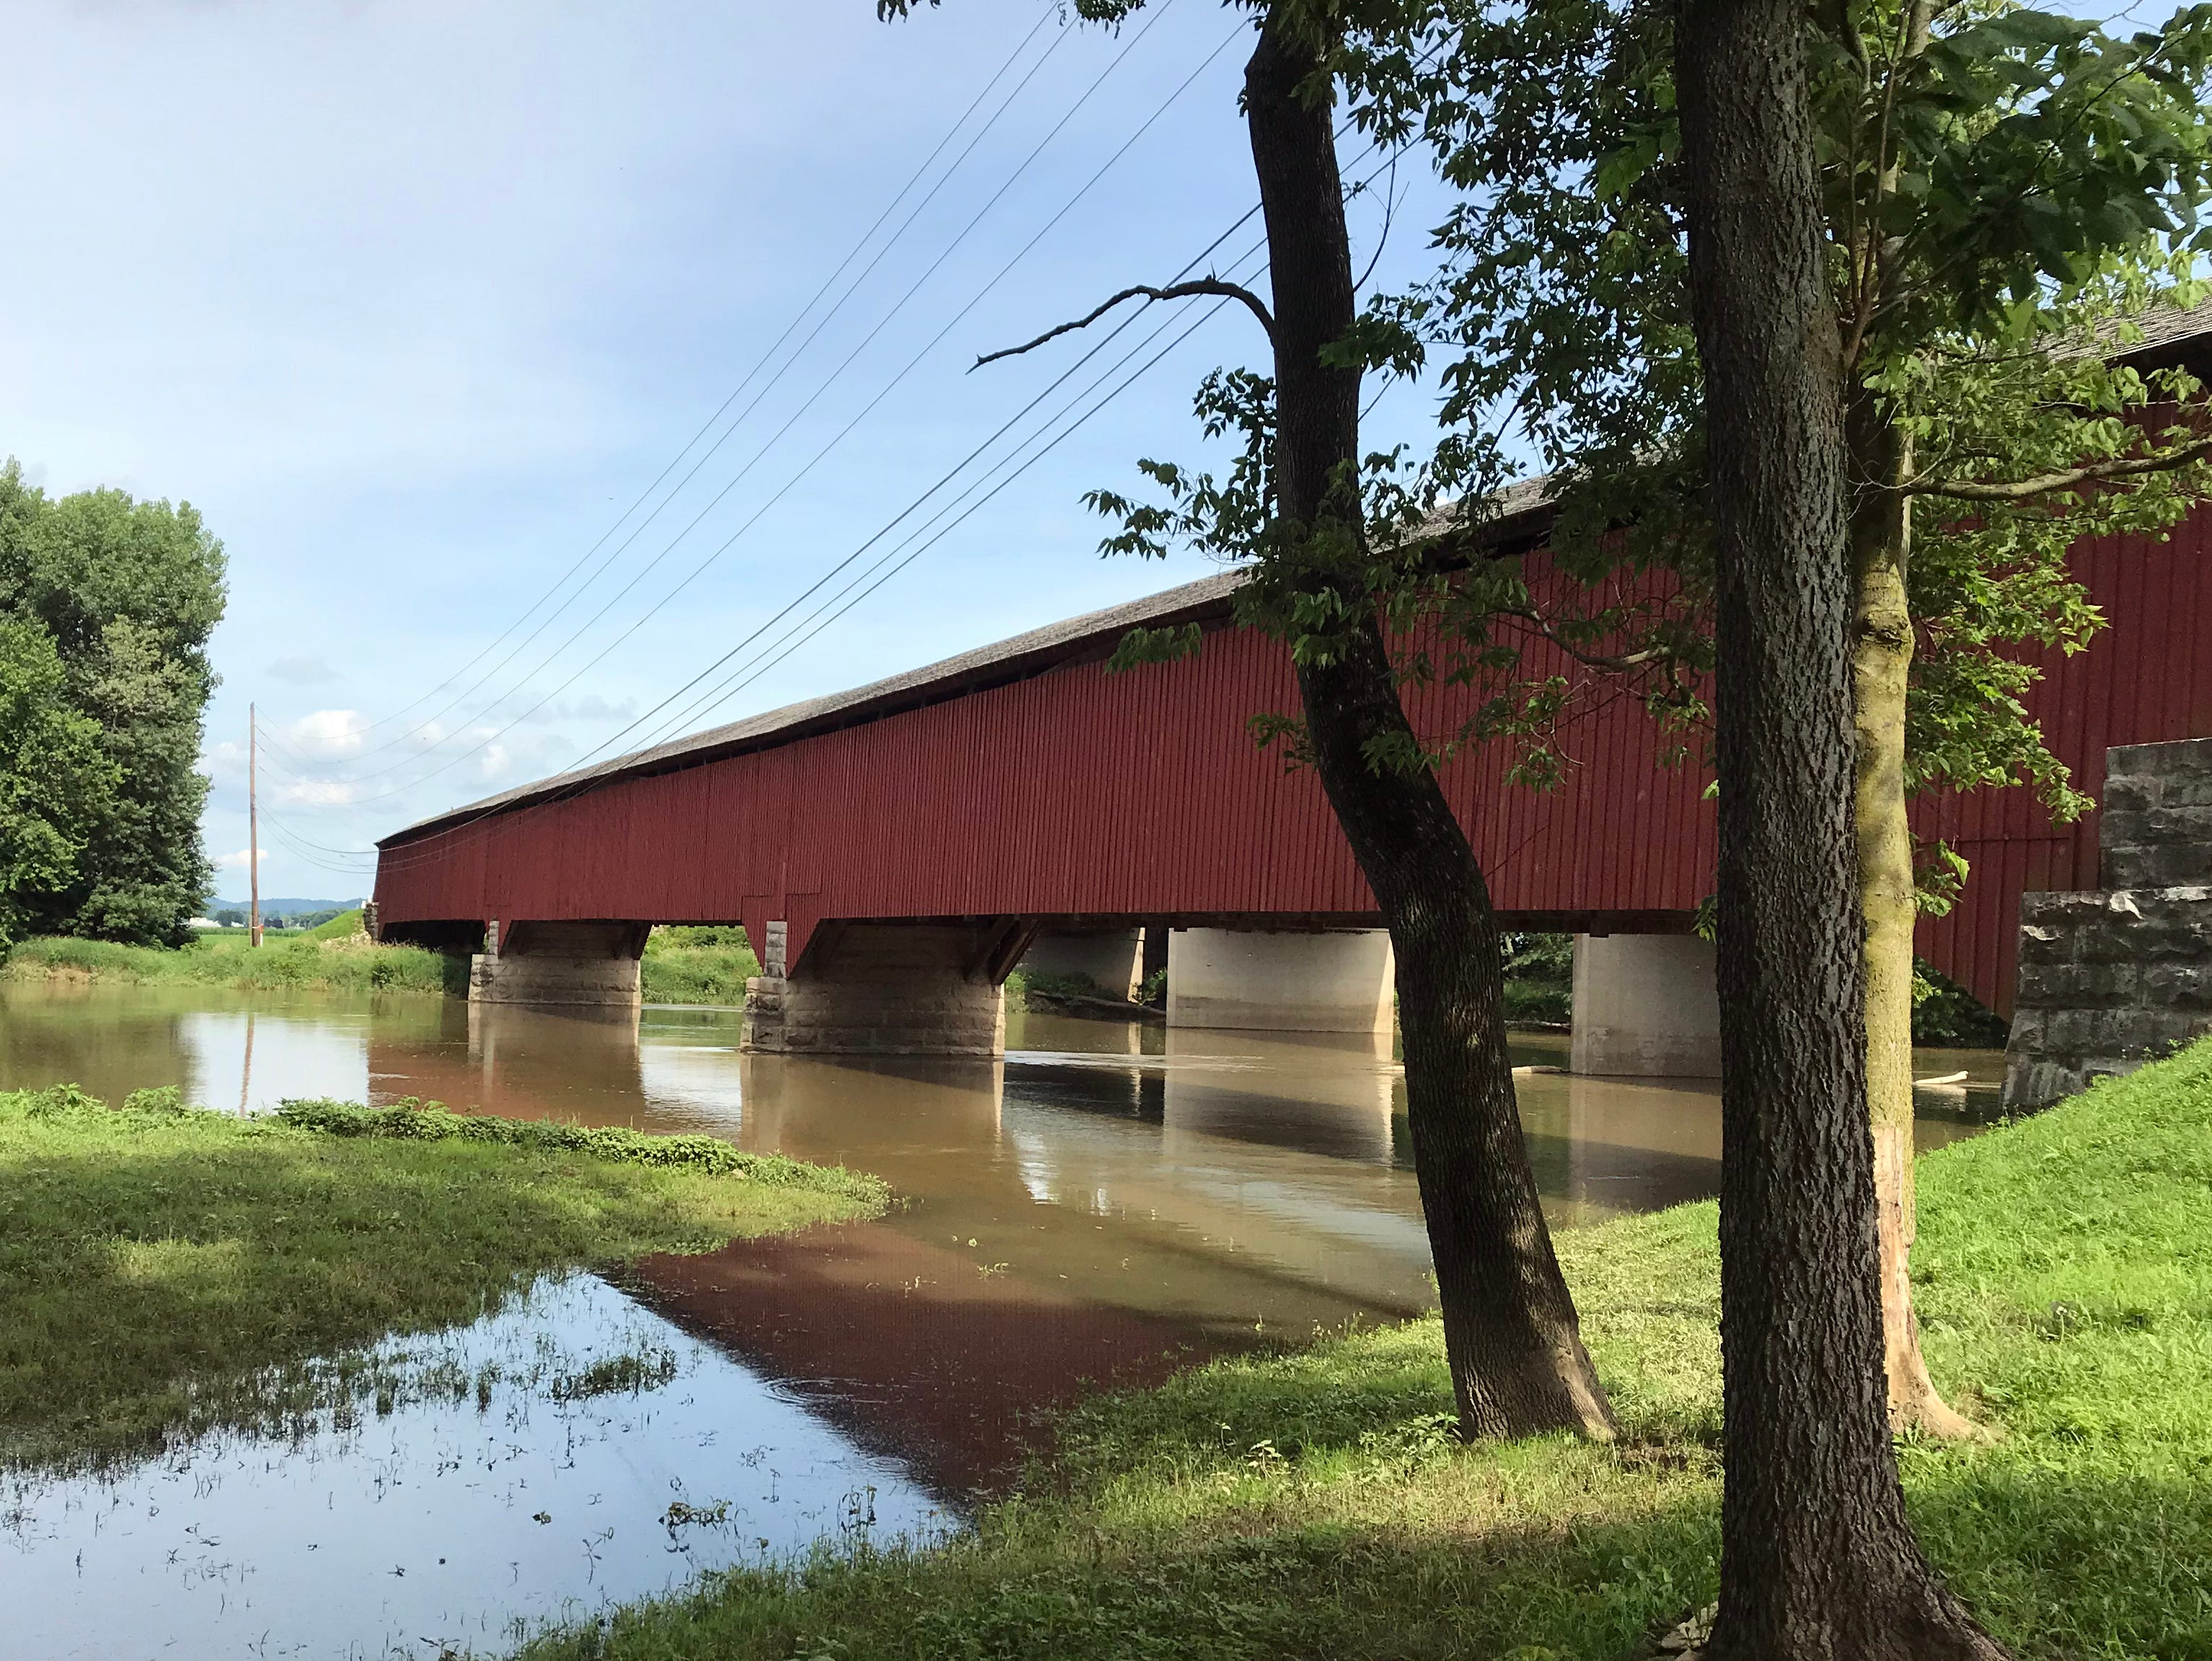 The Medora covered bridge in Jackson Co. is the longest covered bridge in Indiana and depending on how it is measured, the longest in the United States. June 28, 2018